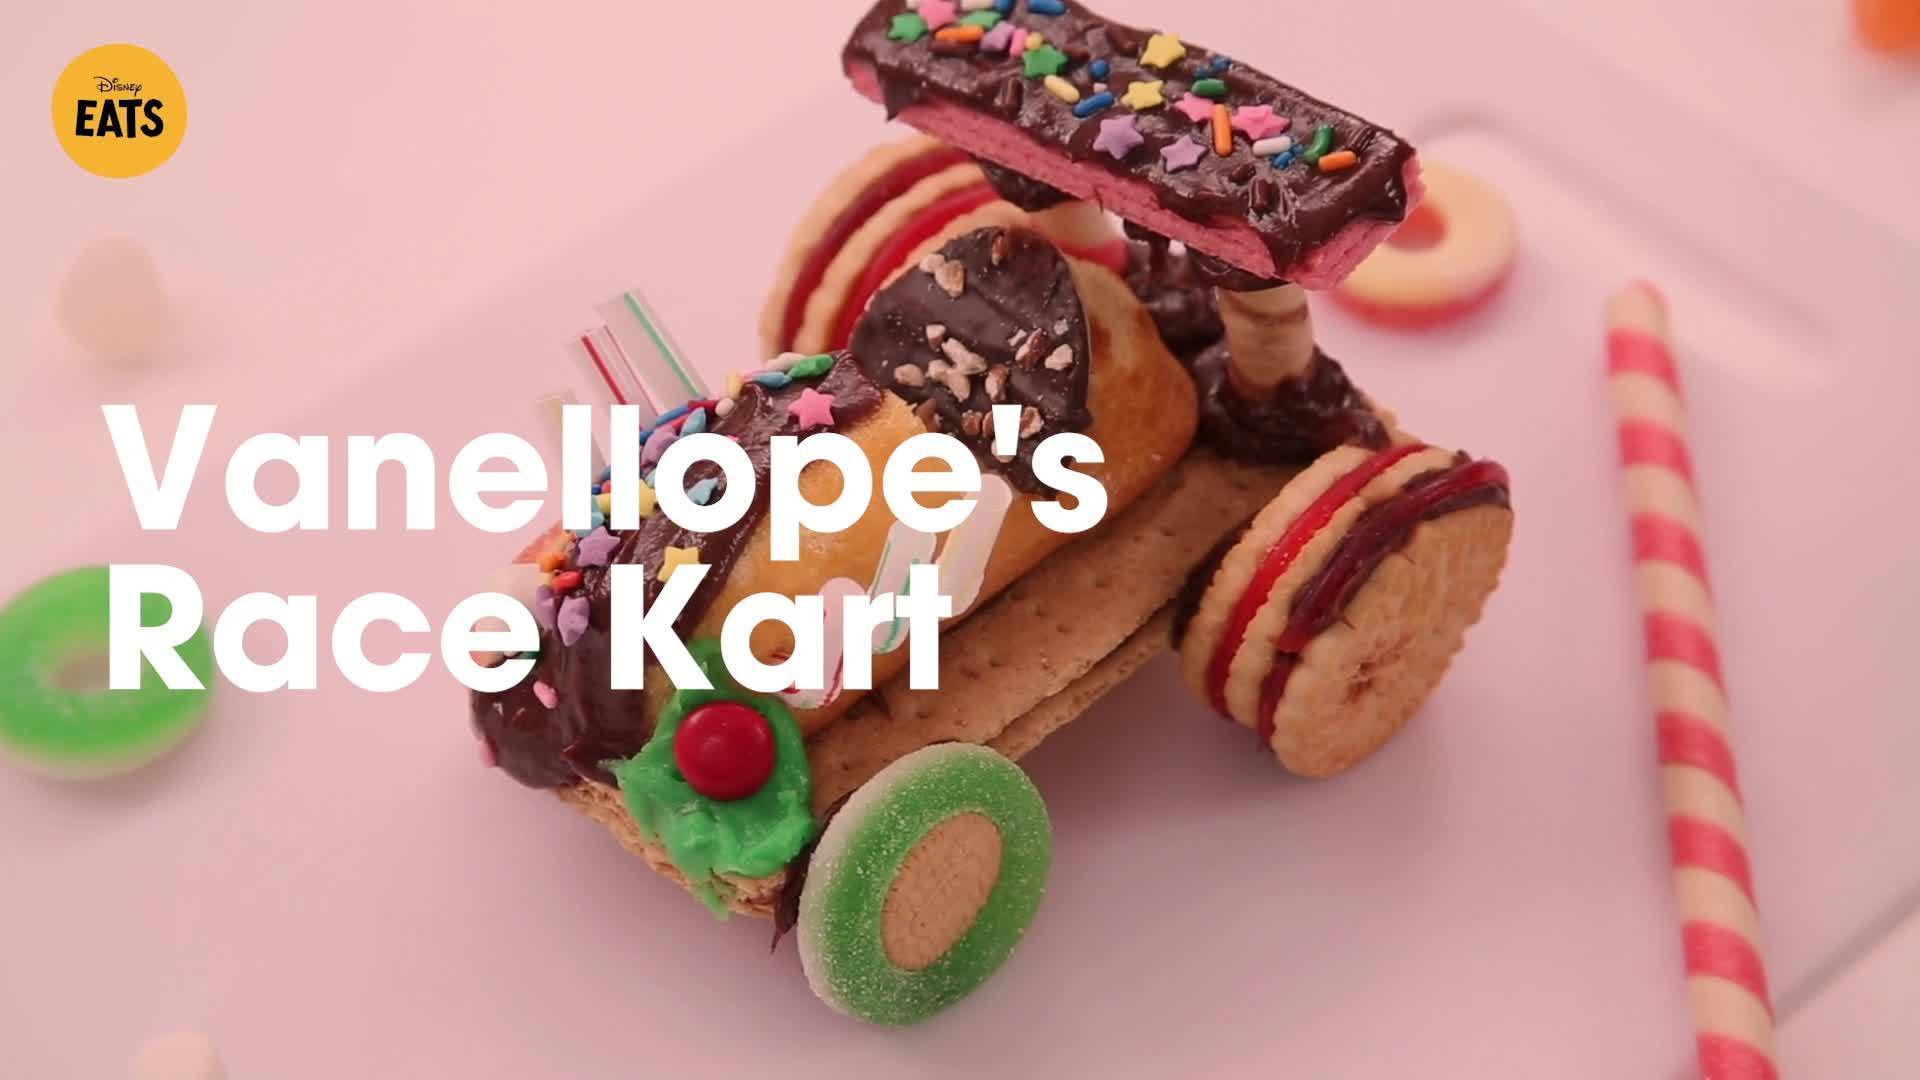 Wreck-It Ralph's Vanellope's Candy Race Kart | Disney Eats